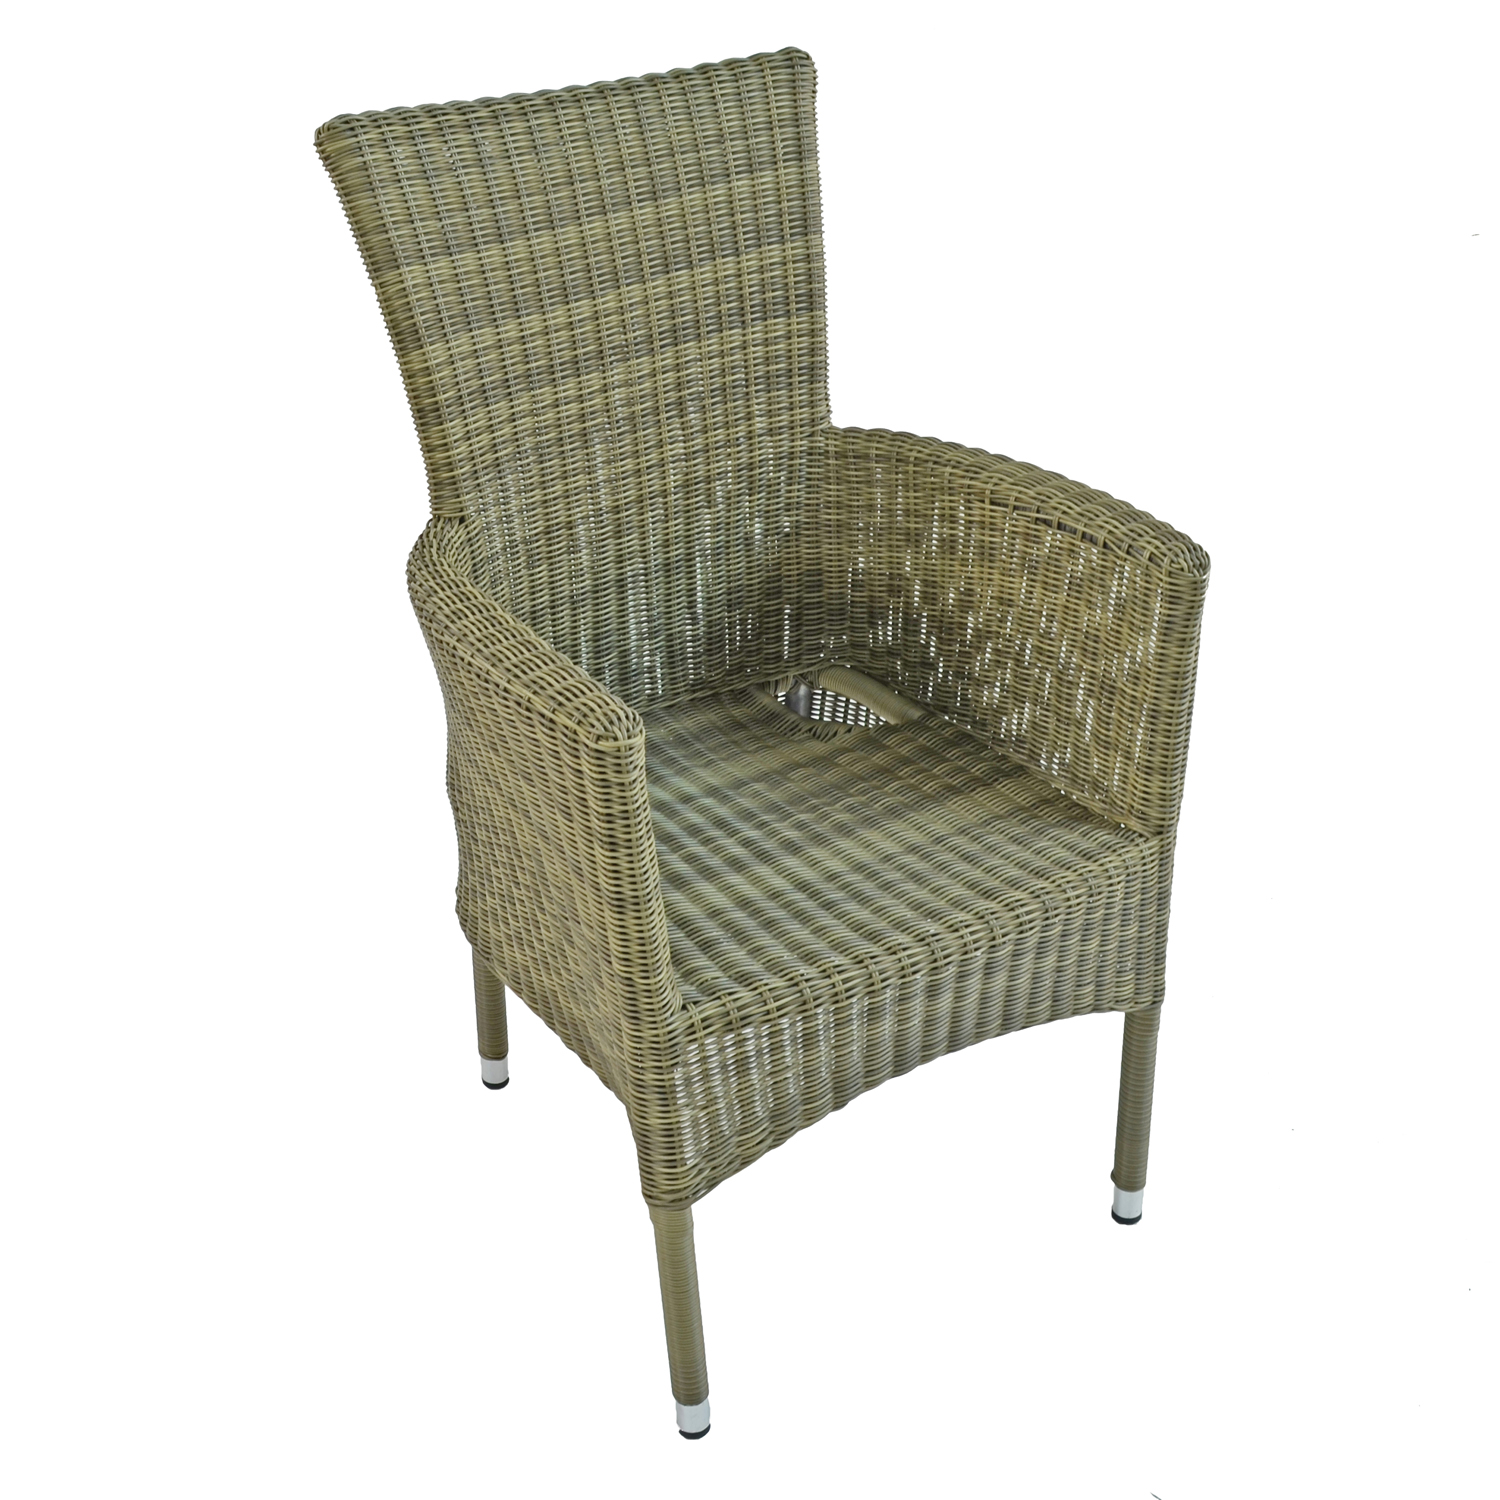 DORCHESTER CHAIR PROFILE WS3